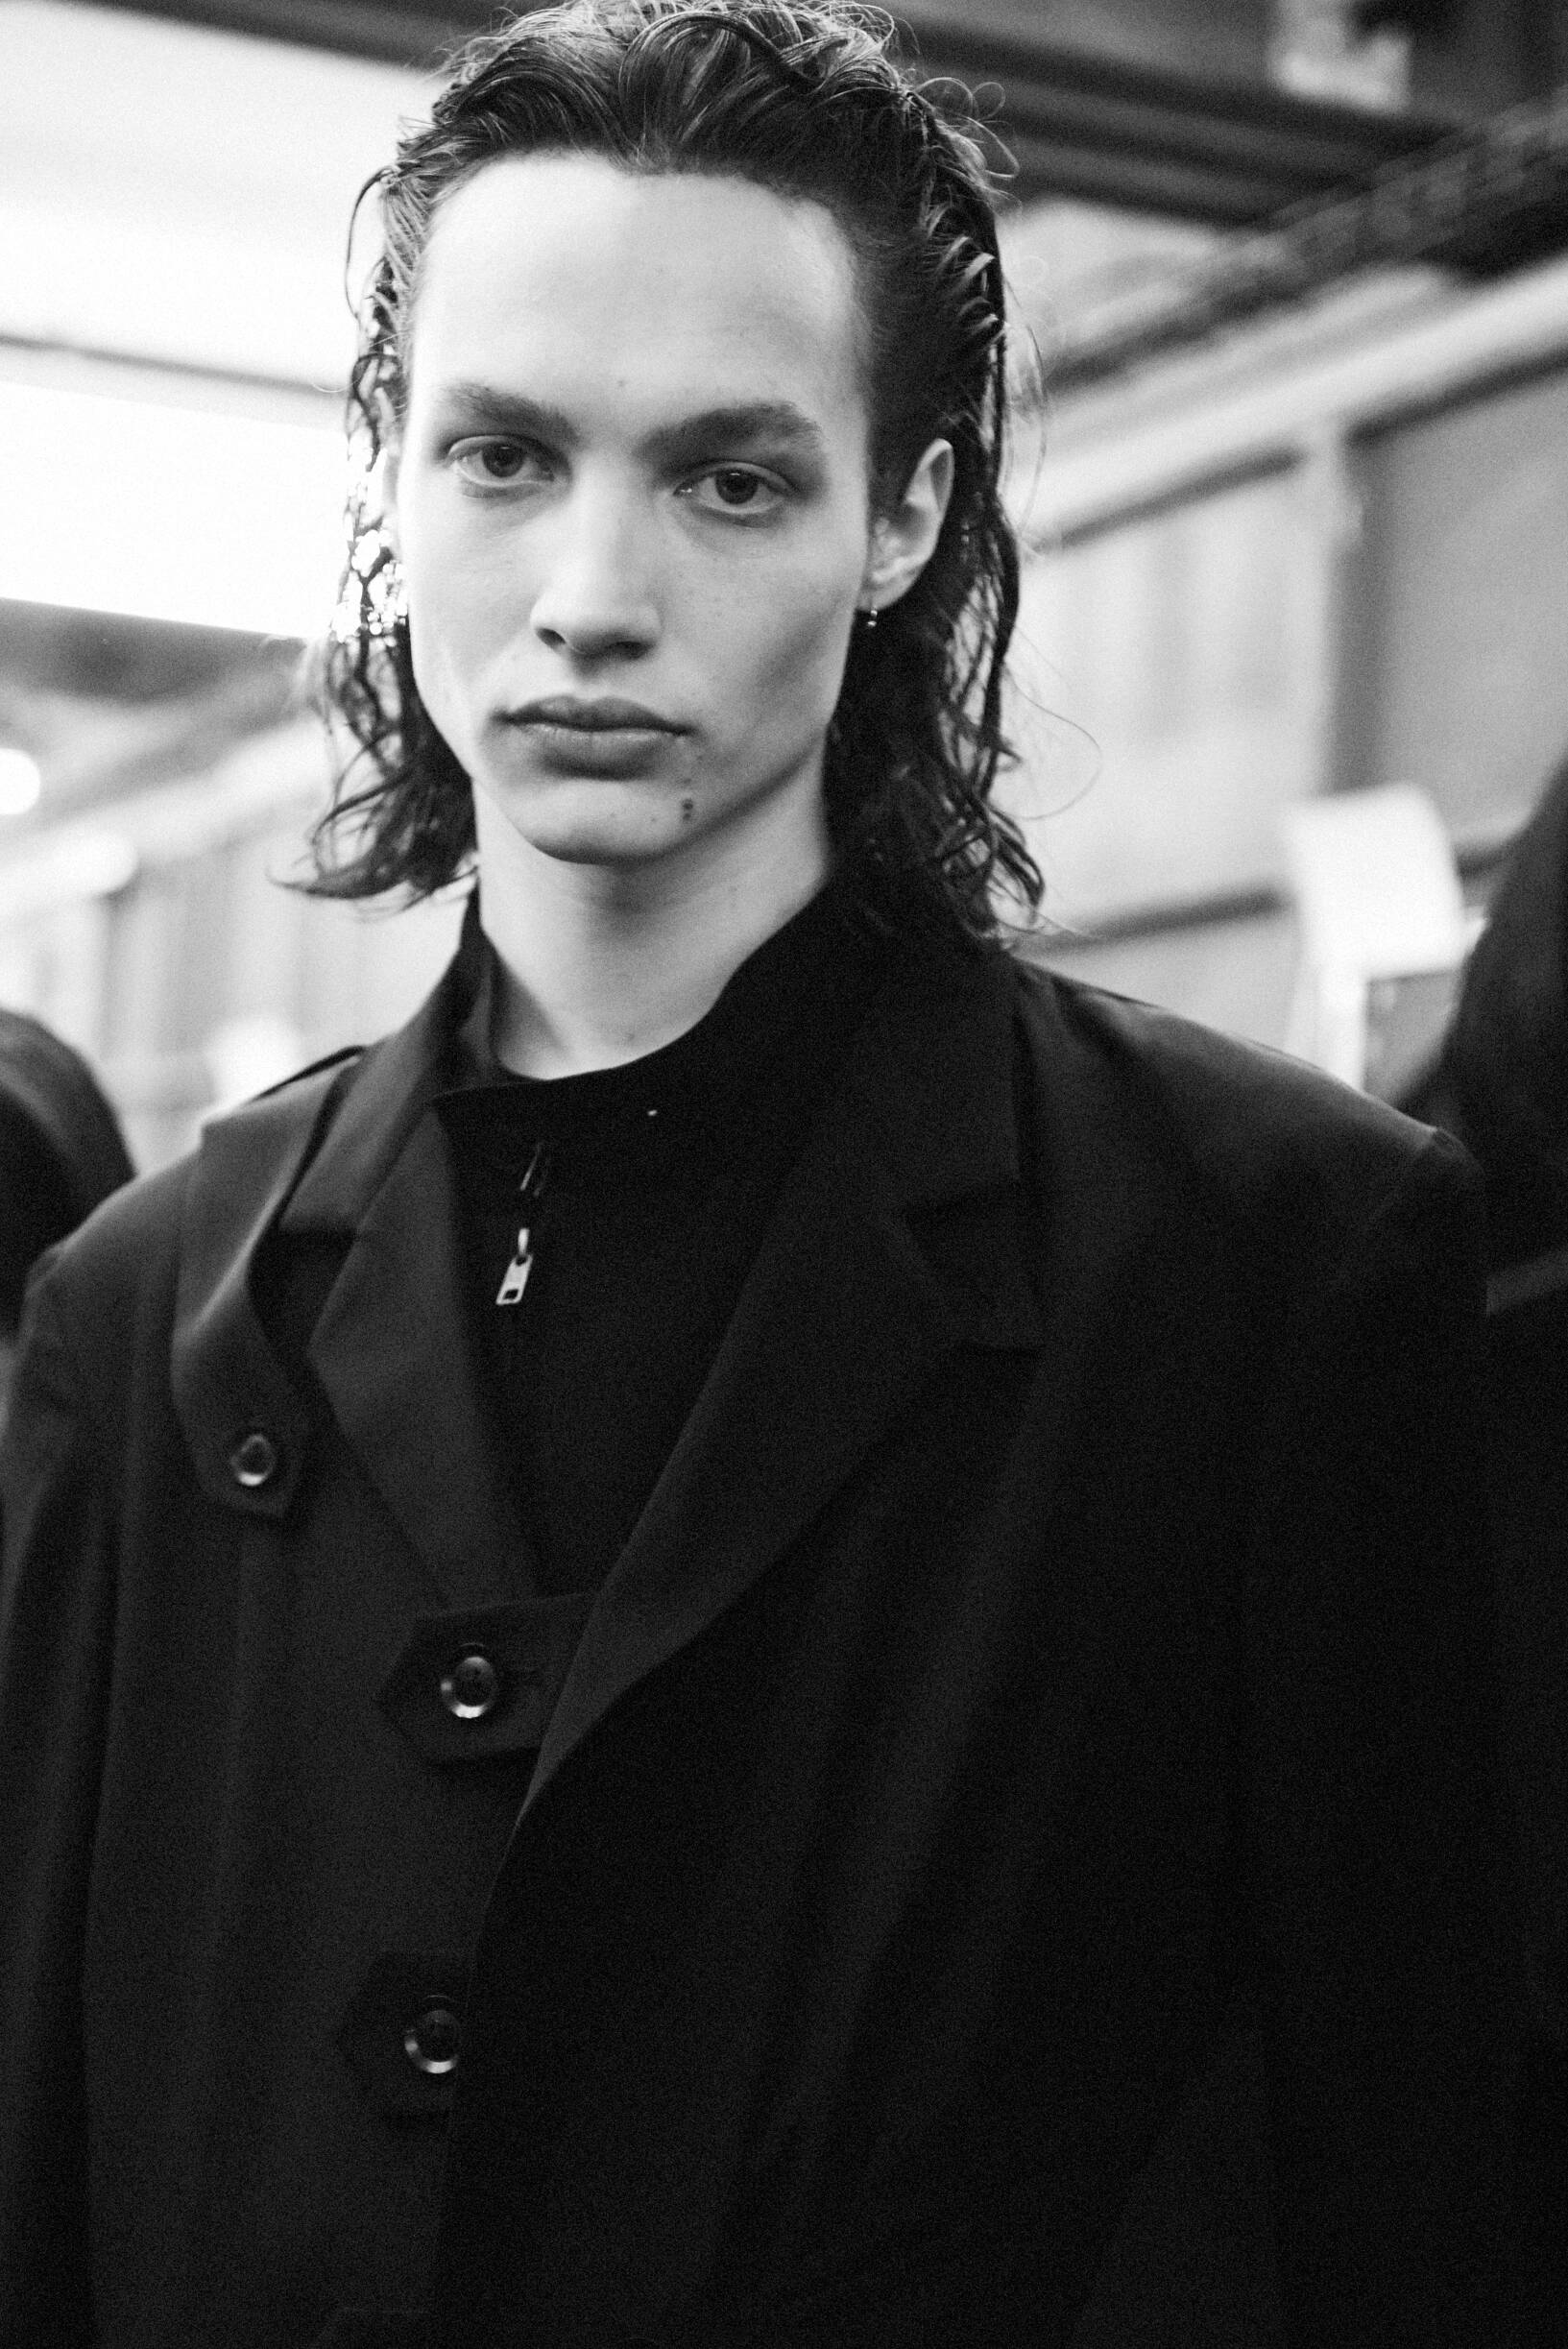 Model Backstage Yohji Yamamoto Spring Summer 2020 Collection Paris Fashion Week